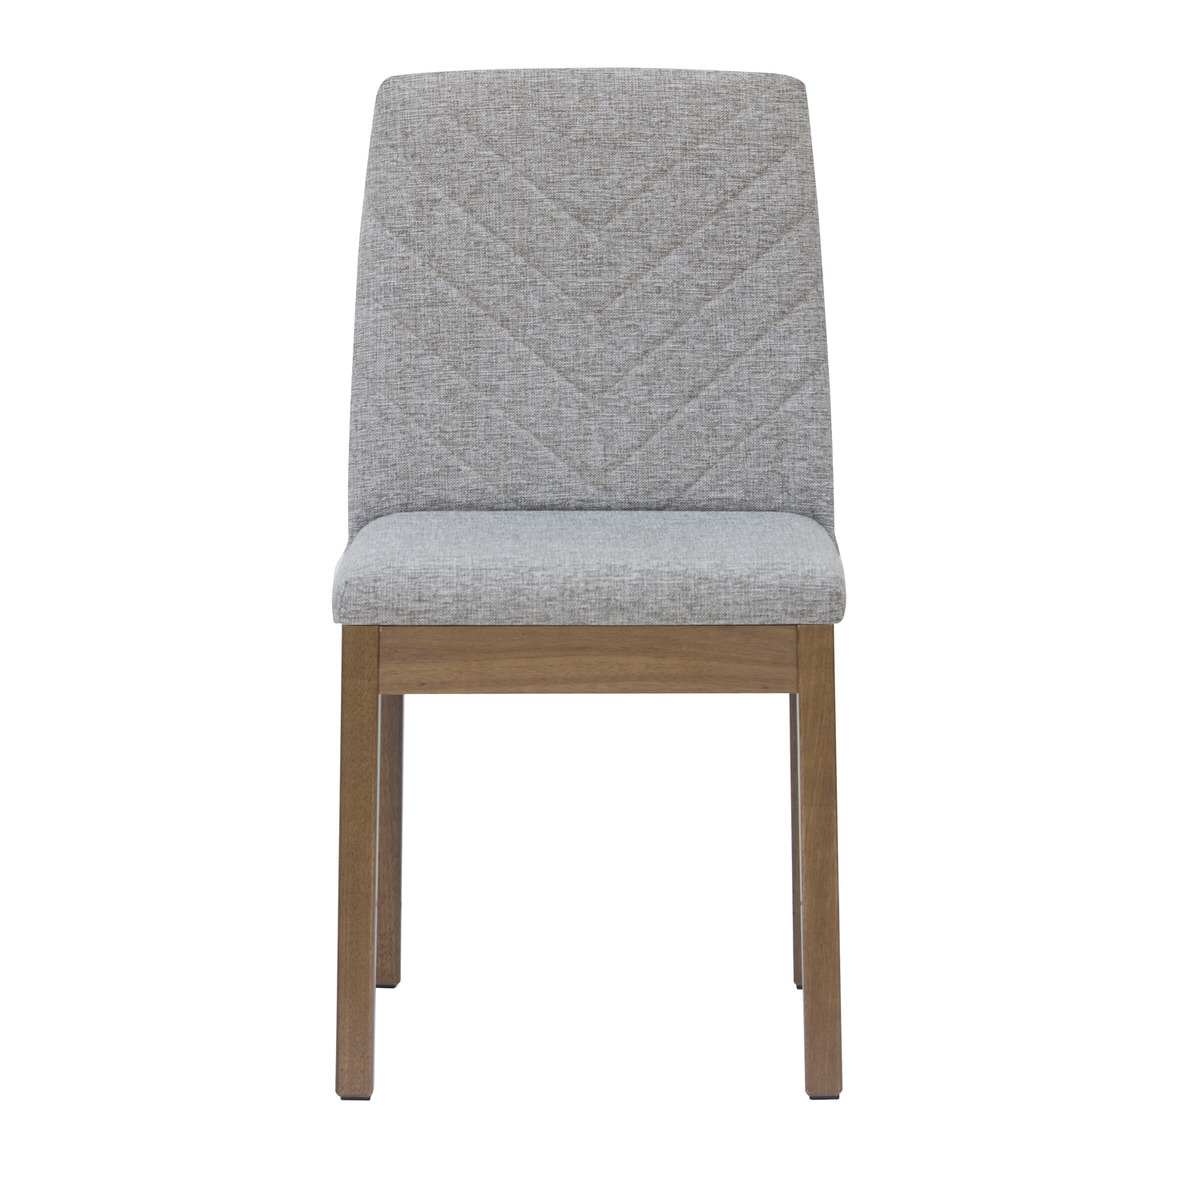 Excellent Catherine 2 Piece Chevron Grey Solid Wood Dining Chair By Manhattan Comfort Creativecarmelina Interior Chair Design Creativecarmelinacom